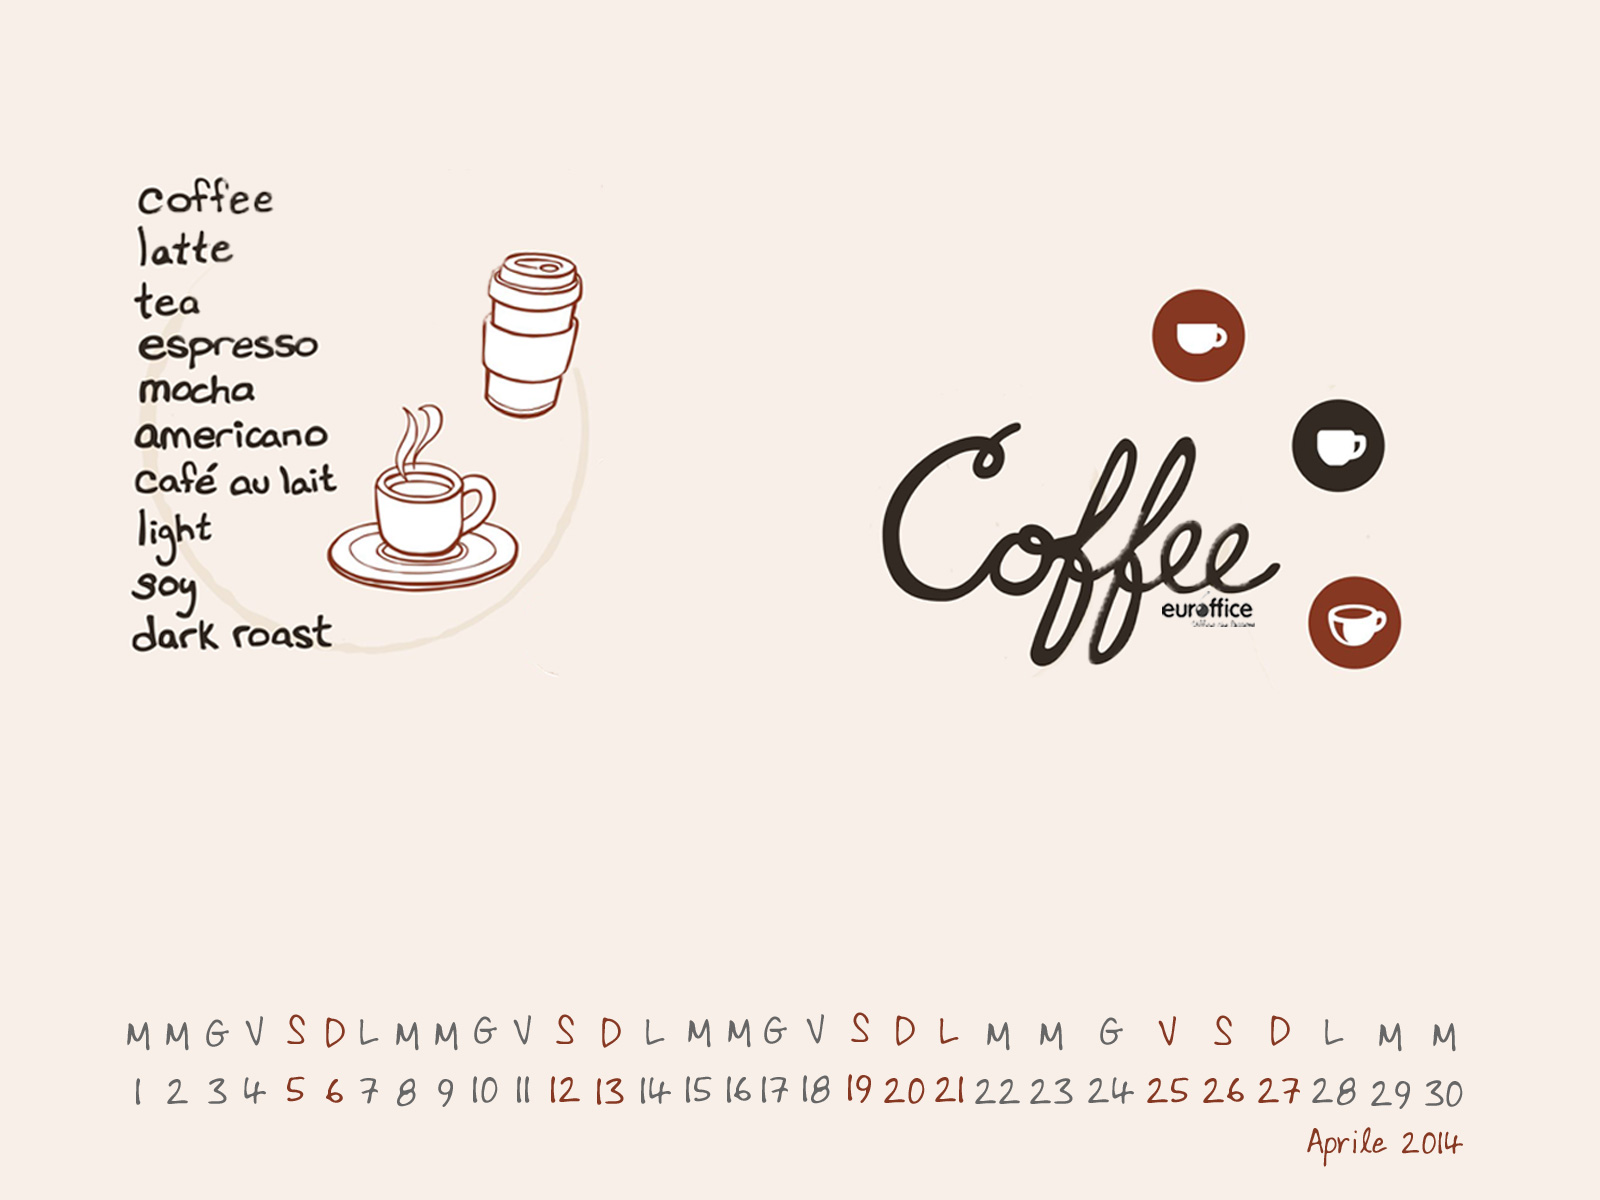 Wallpaper aprile 2014 - Coffee addicted